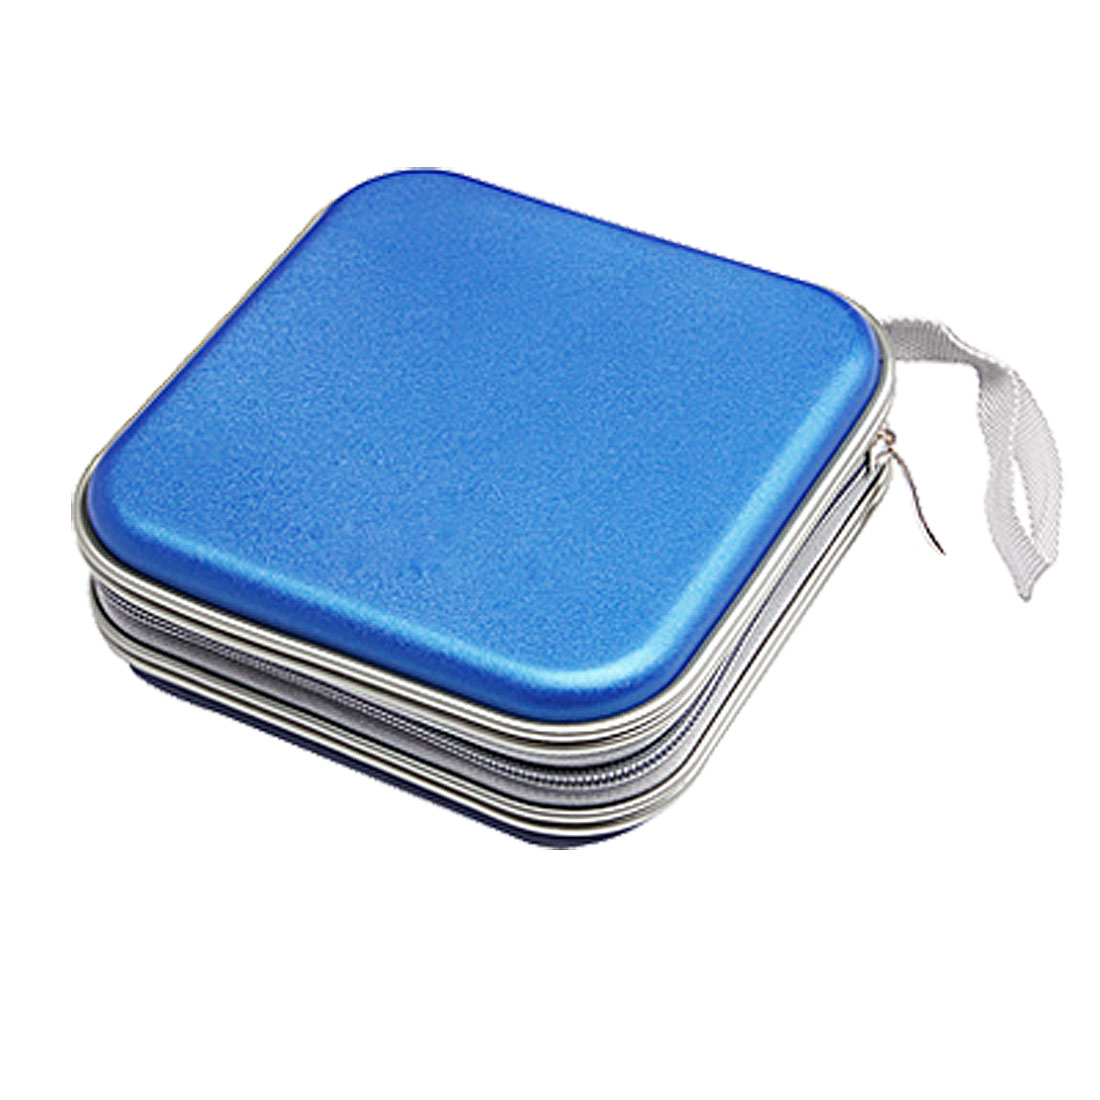 CD VCD DVD Organizer Carrying Square Case Storage Holder Blue